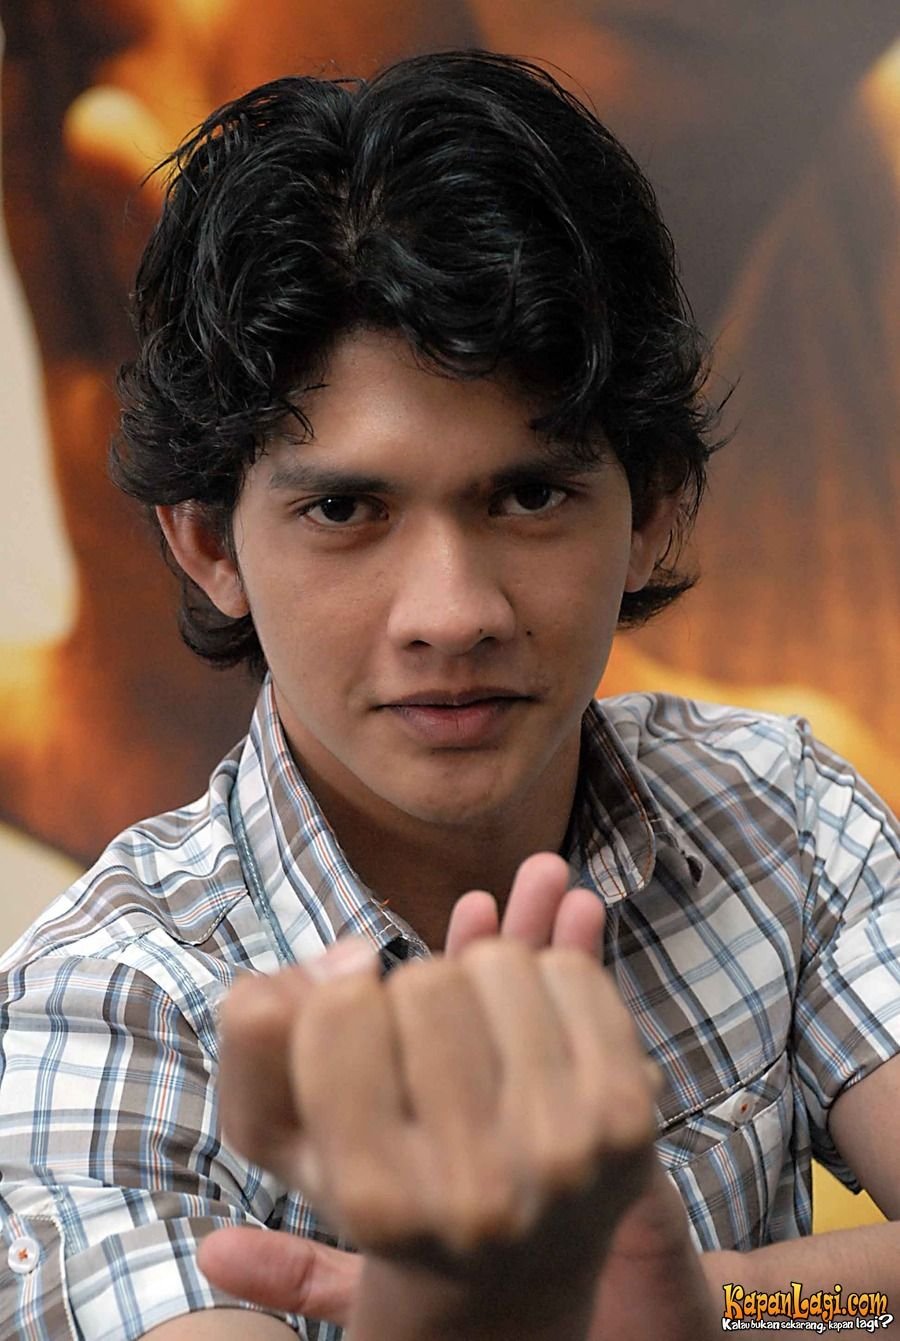 Iko Uwais is an Indonesian actor, stuntman, fight choreographer, and martial artist.